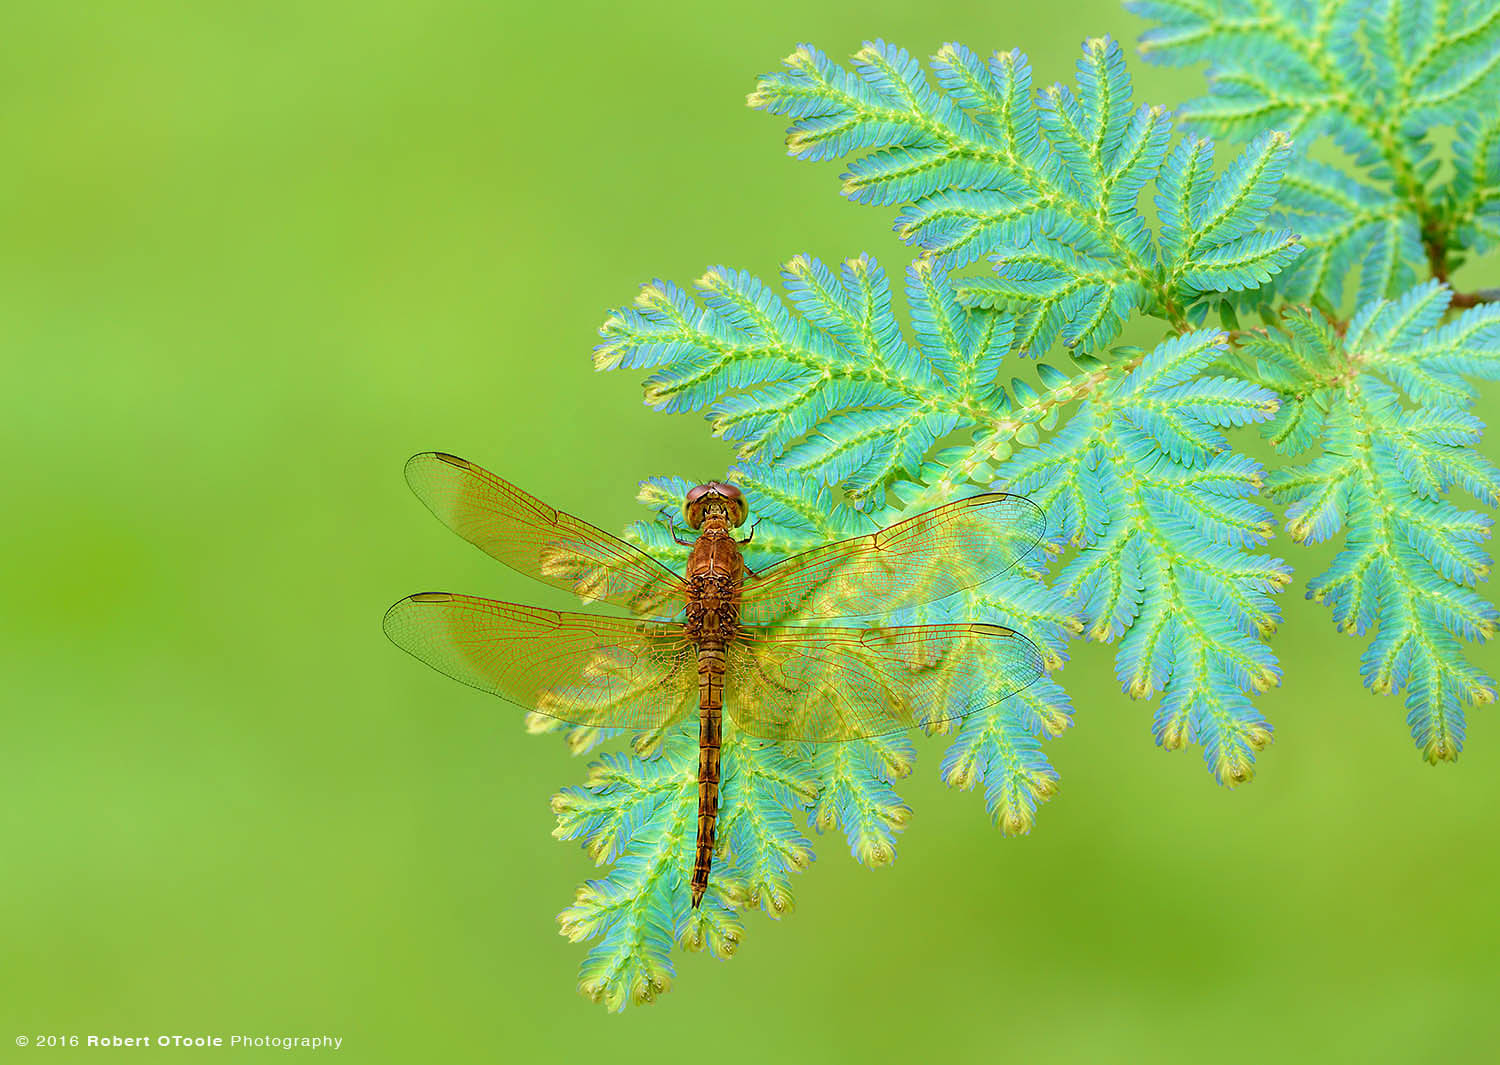 Common Parasol Dragonfly on Peacock Fern